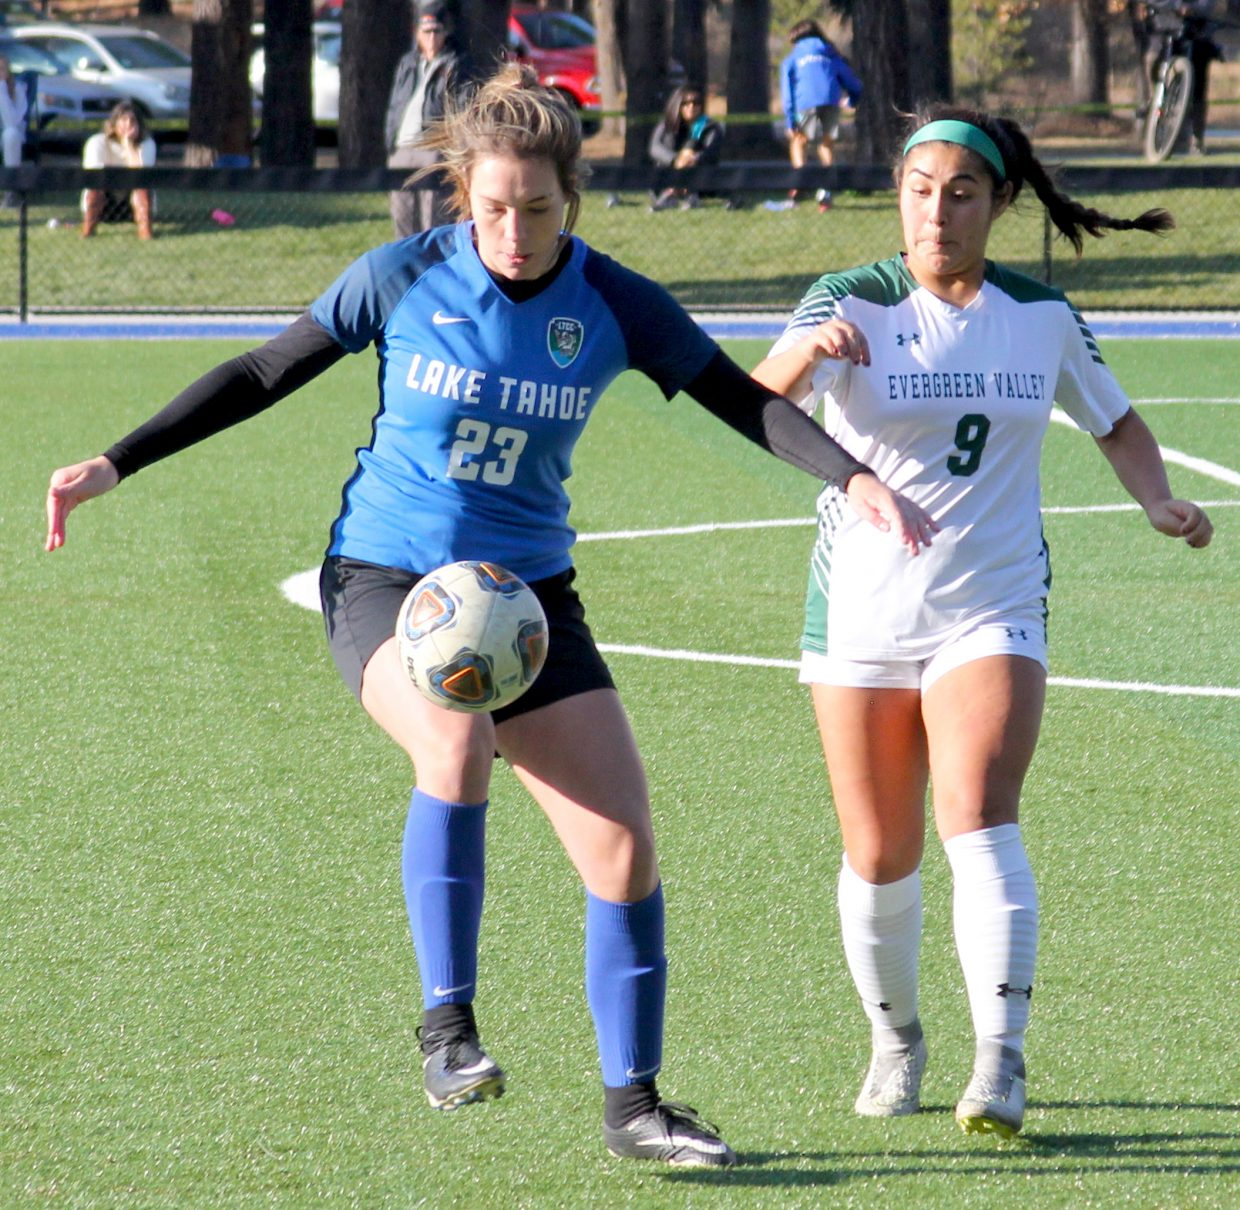 Eleanor Boothman gathers a pass Saturday during Lake Tahoe's 5-0 victory over Evergreen Valley.